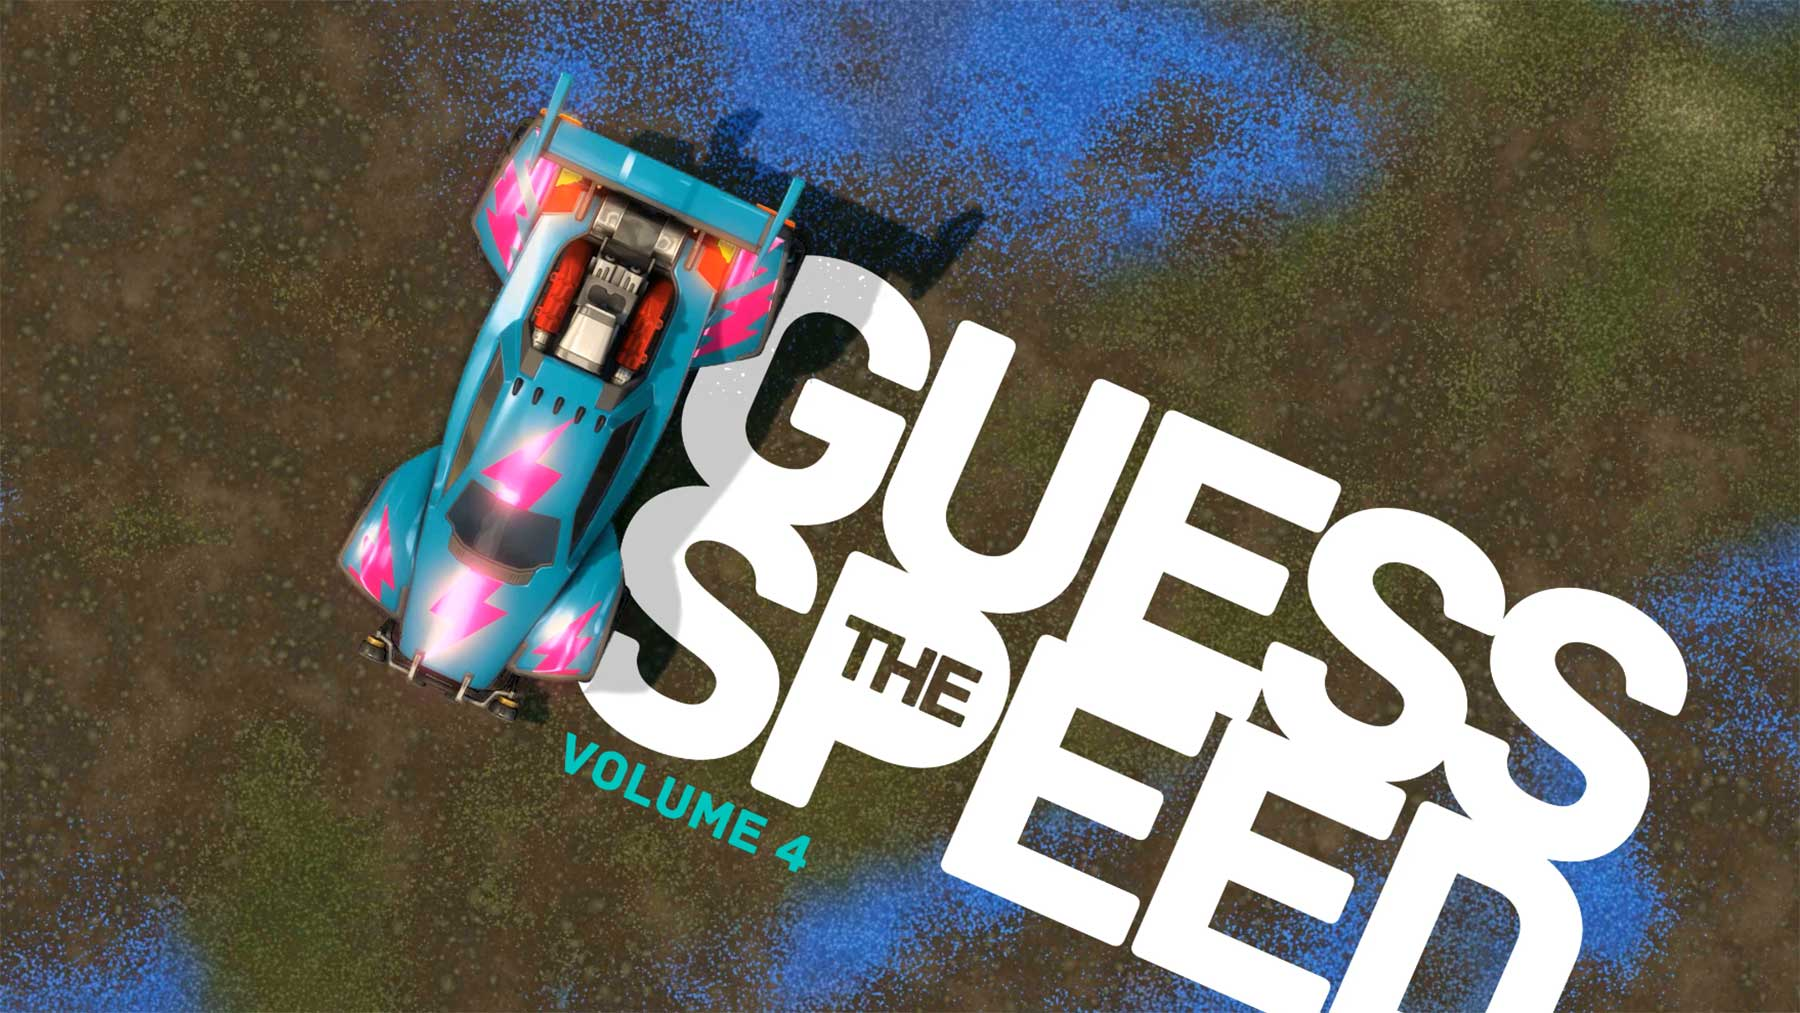 Rocket League Quiz: Guess the Speed 4 Guess-the-speed-vol-4